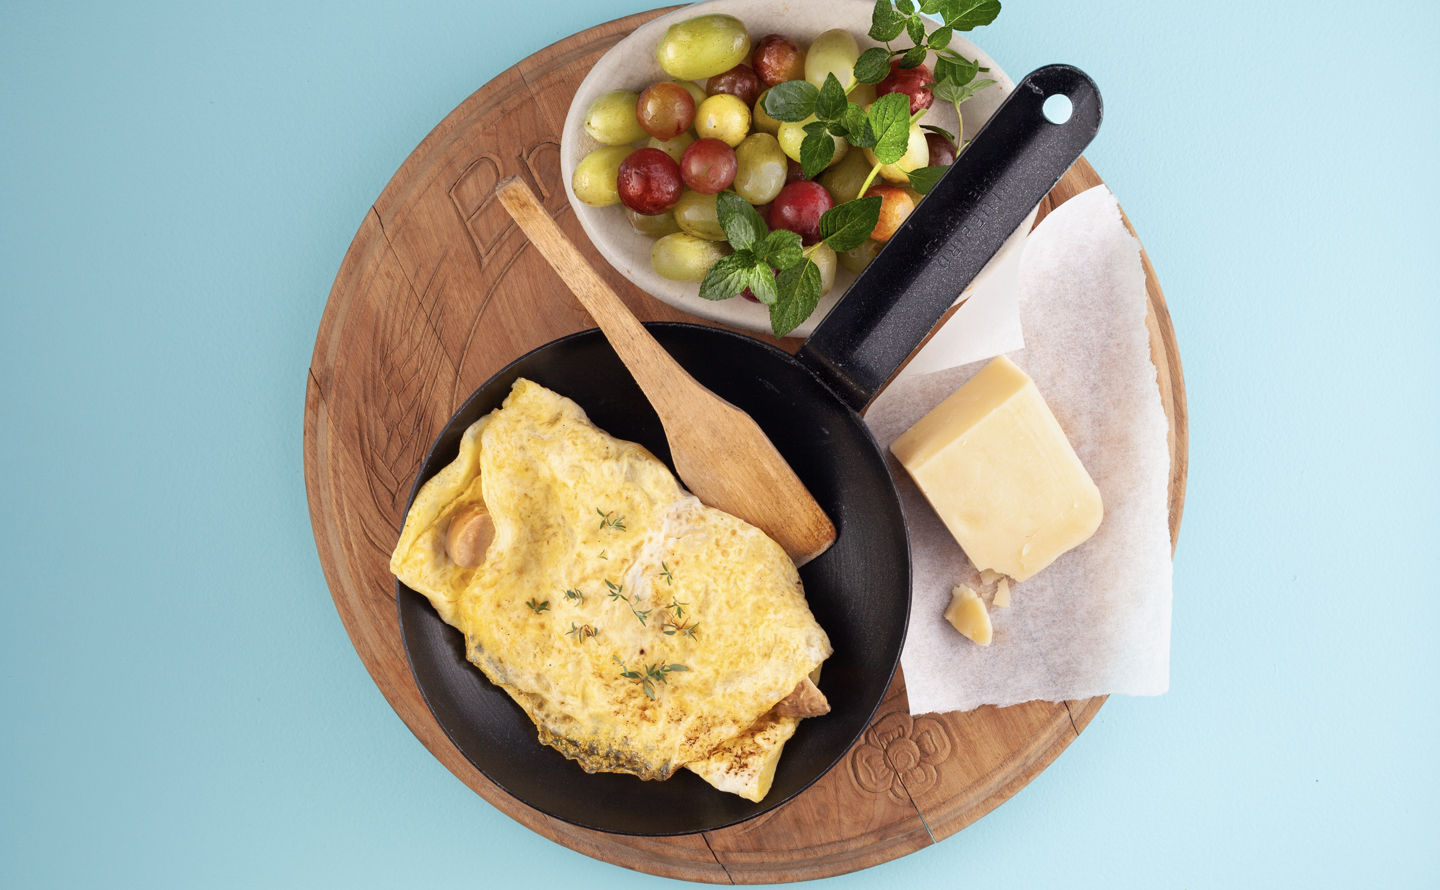 Sausage Cheddar Omelette with Fruit